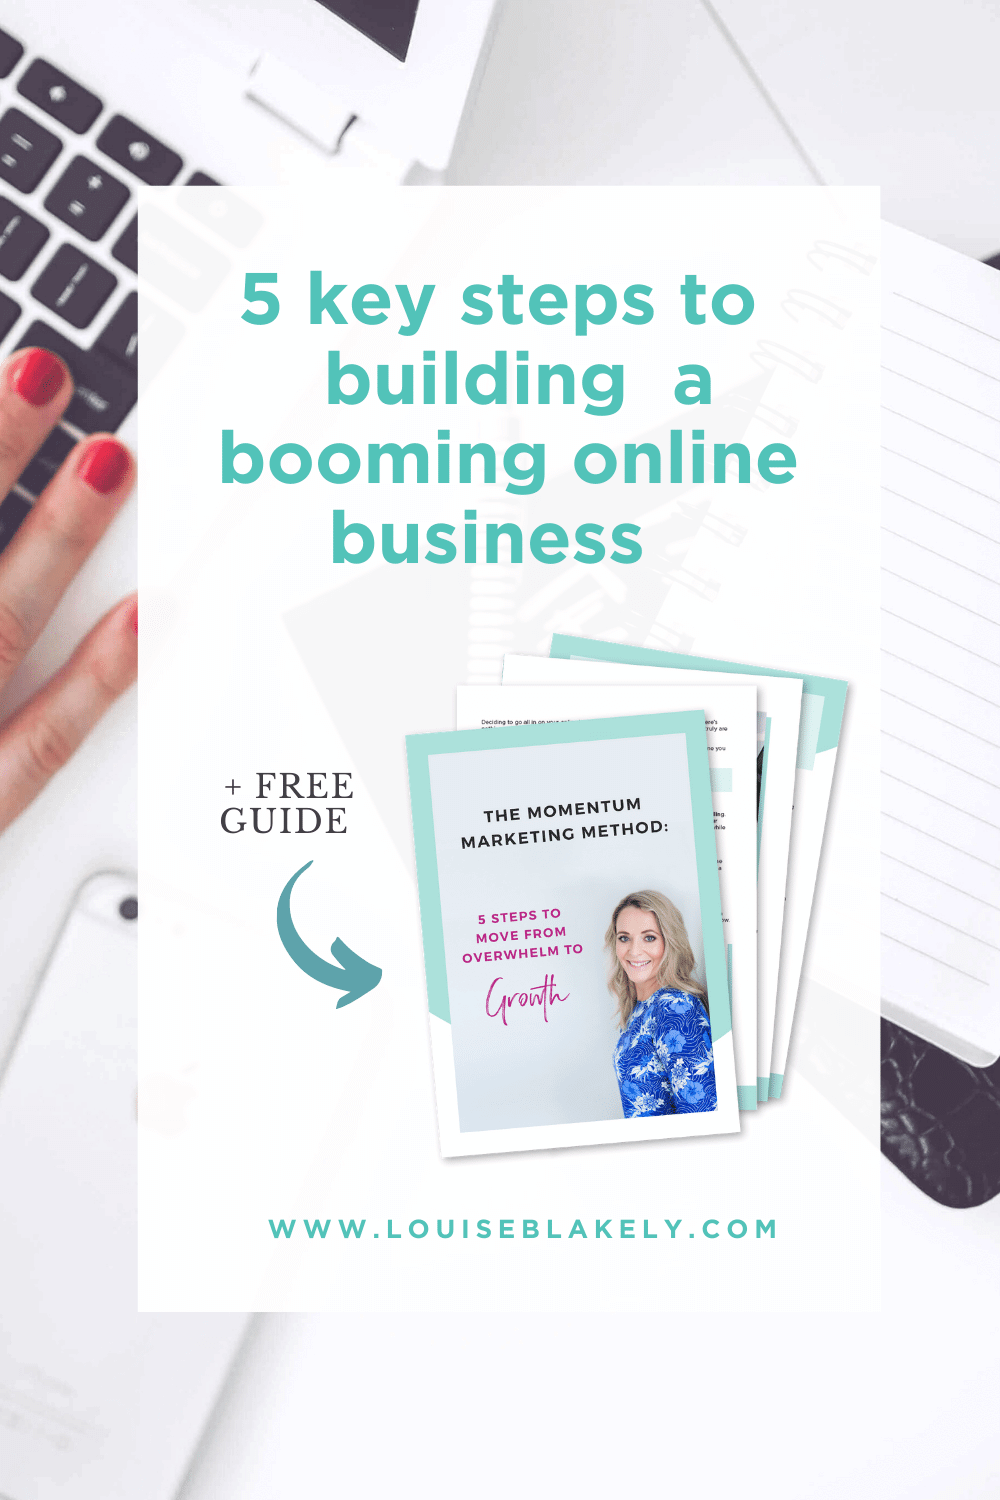 Booming Online Business